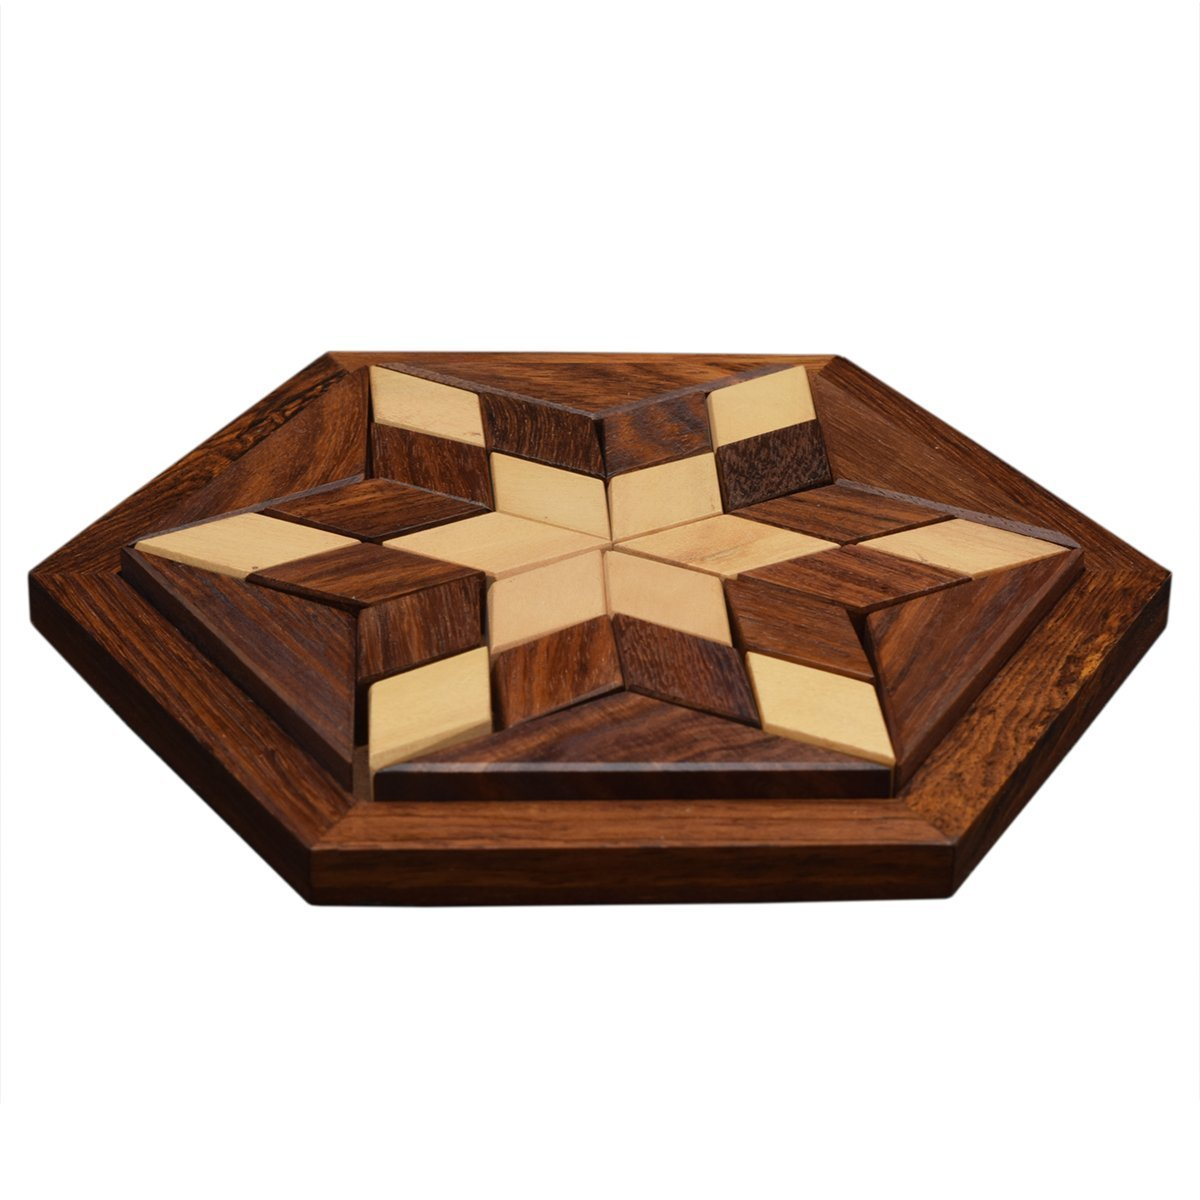 Brain Teaser Gifts for Kids Indian Glance 30-Piece Star Jigsaw Wooden Puzzle Tangram Puzzle Board- Wooden Toy Game